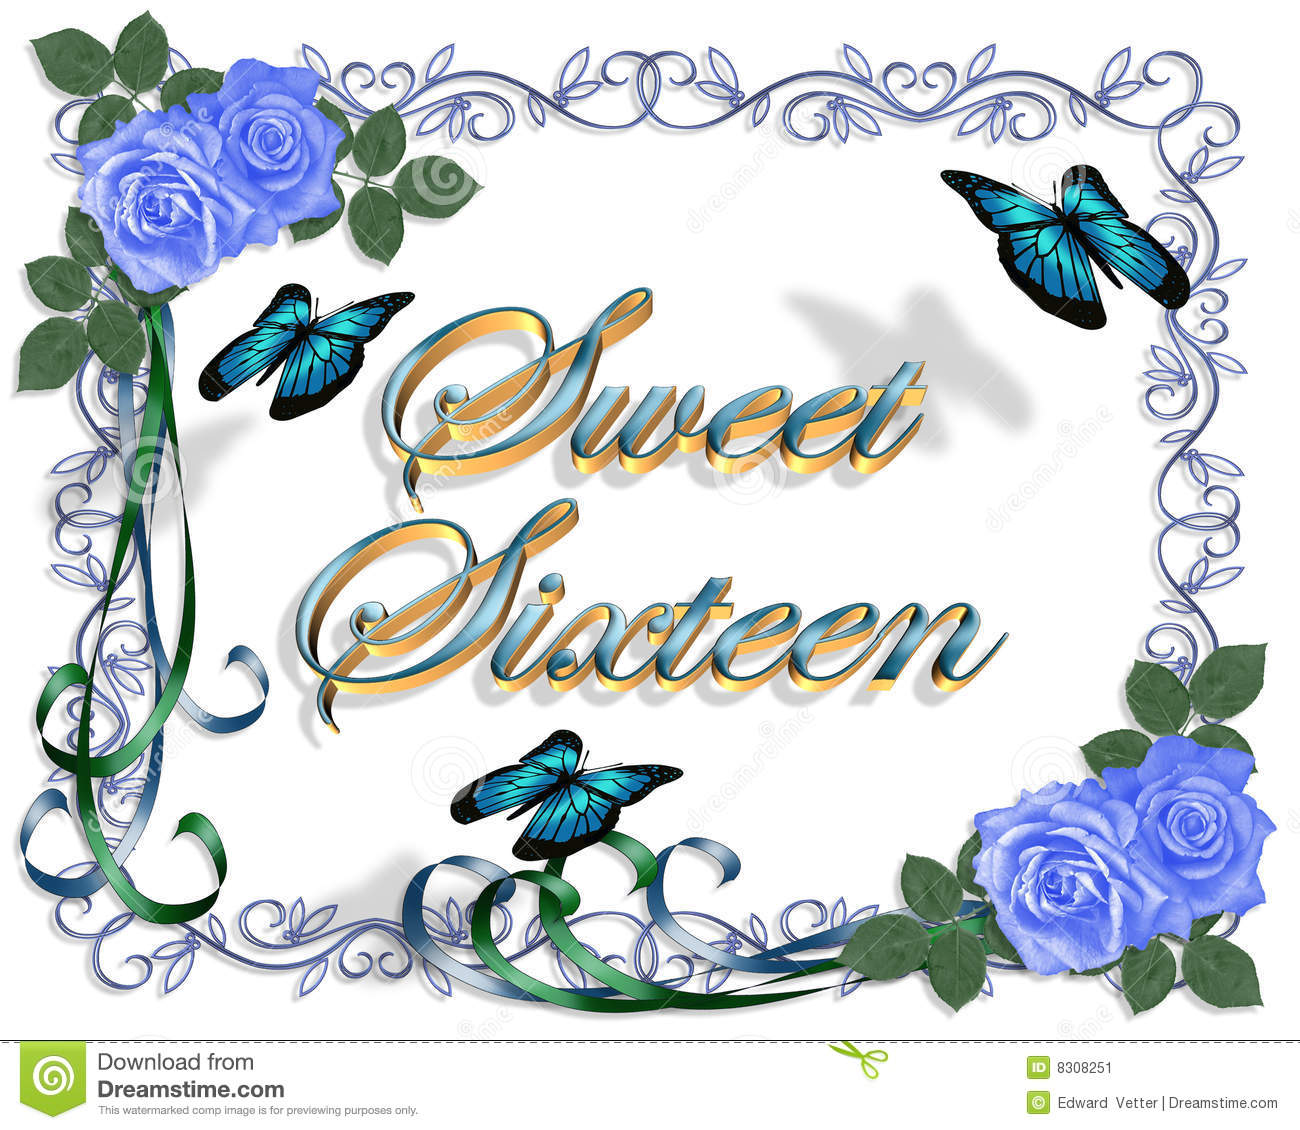 Clipart Geburtstag Transparent Png Clipart Images Free Download